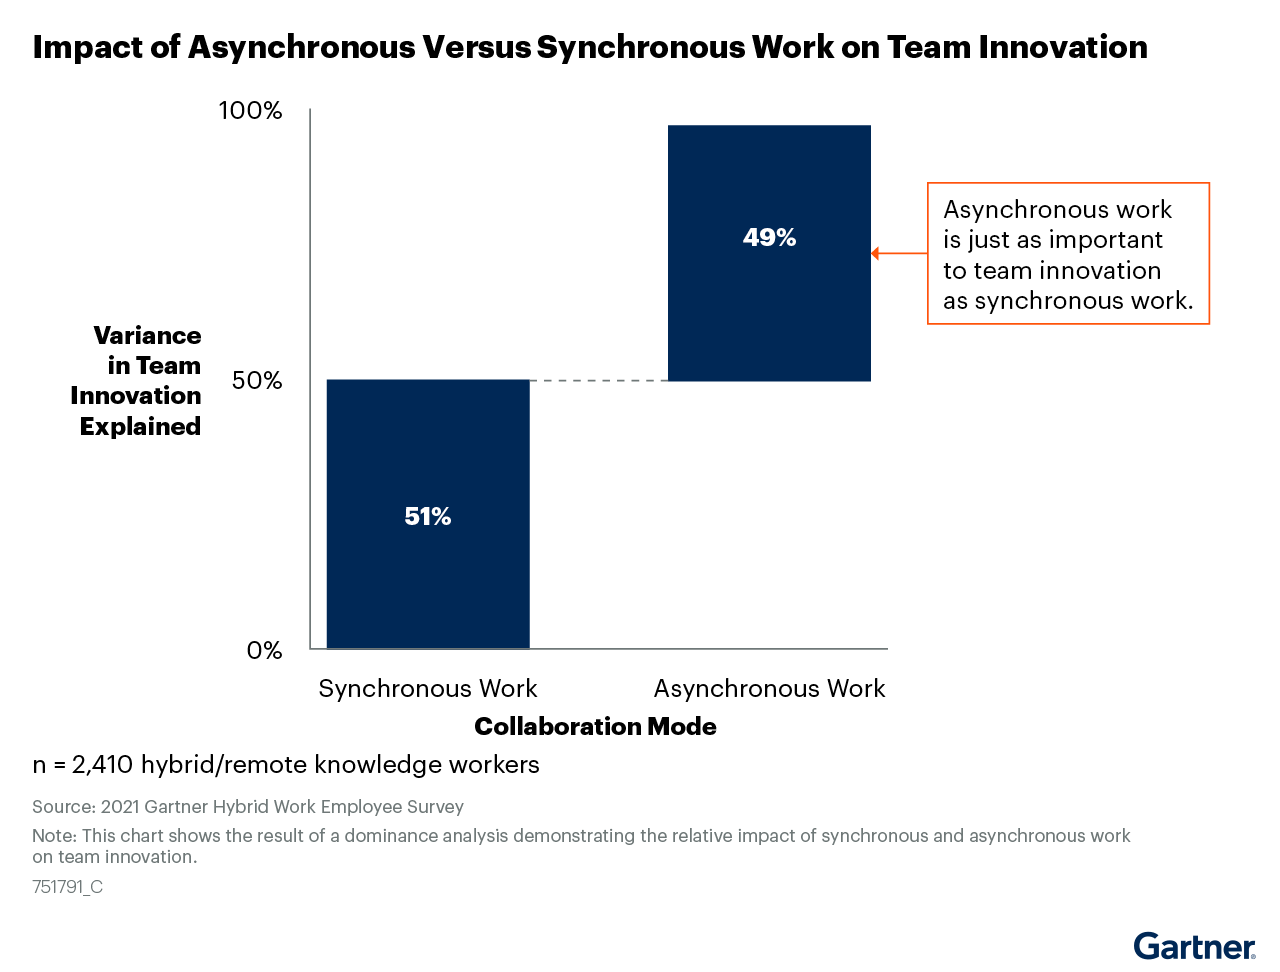 Figure 9: Impact of Asynchronous Versus Synchronous Work on Team Innovation